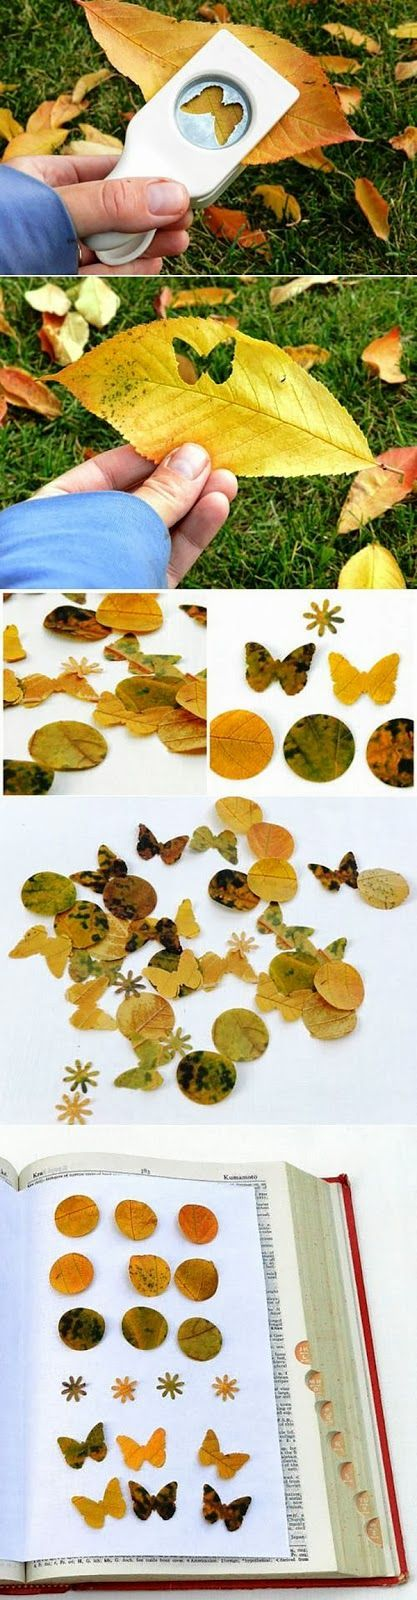 Craft Punched Leaves to create art for autumn - Good for a fall theme and fine motor skills - collect leaves on a walk and put them in the sensory table with hole punchers: